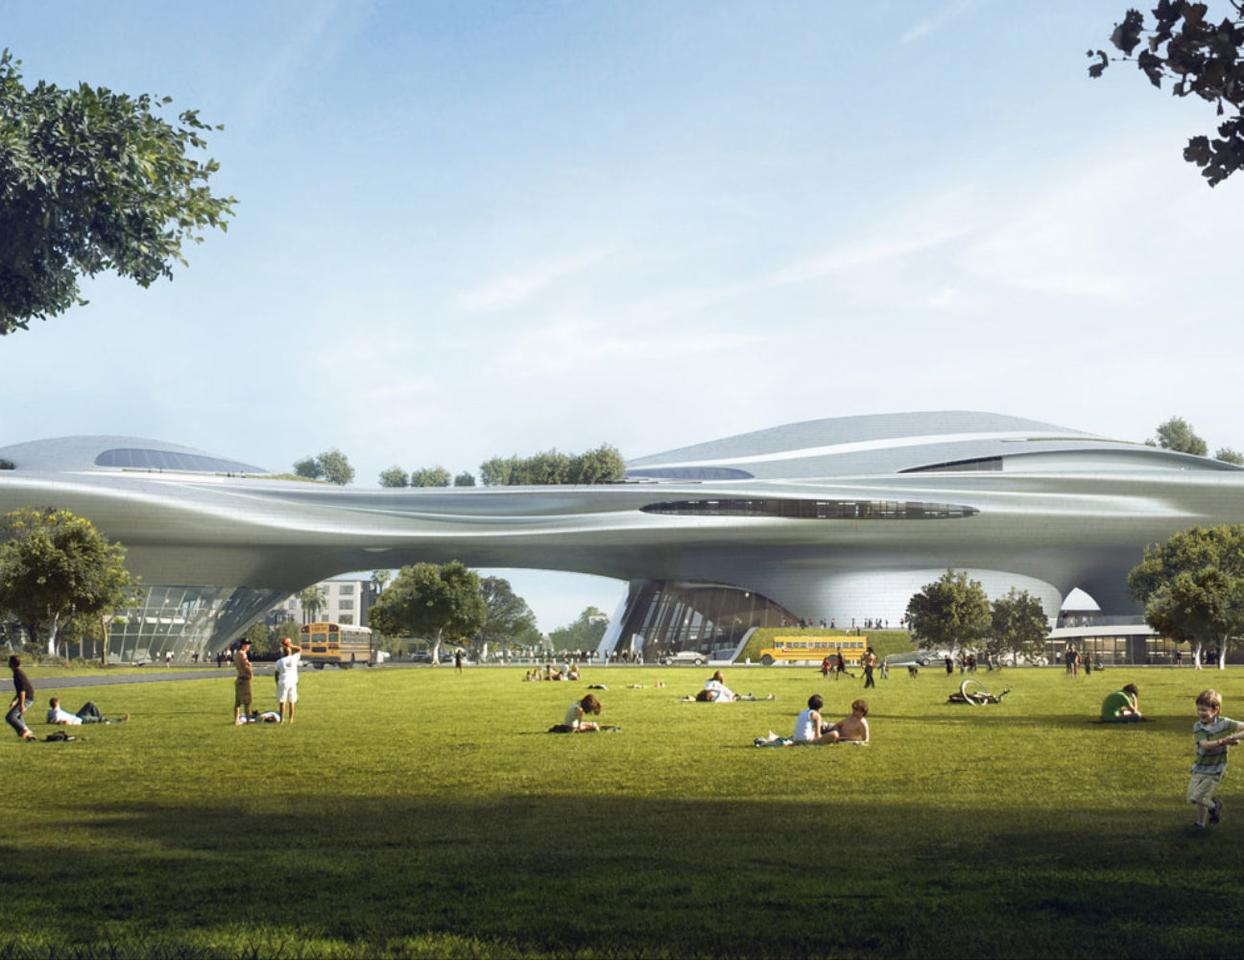 The original design for the Lucas Museum of Narrative Art has thankfully been altered from a rather awkward silver volcano-like structure to a sleeker alternative